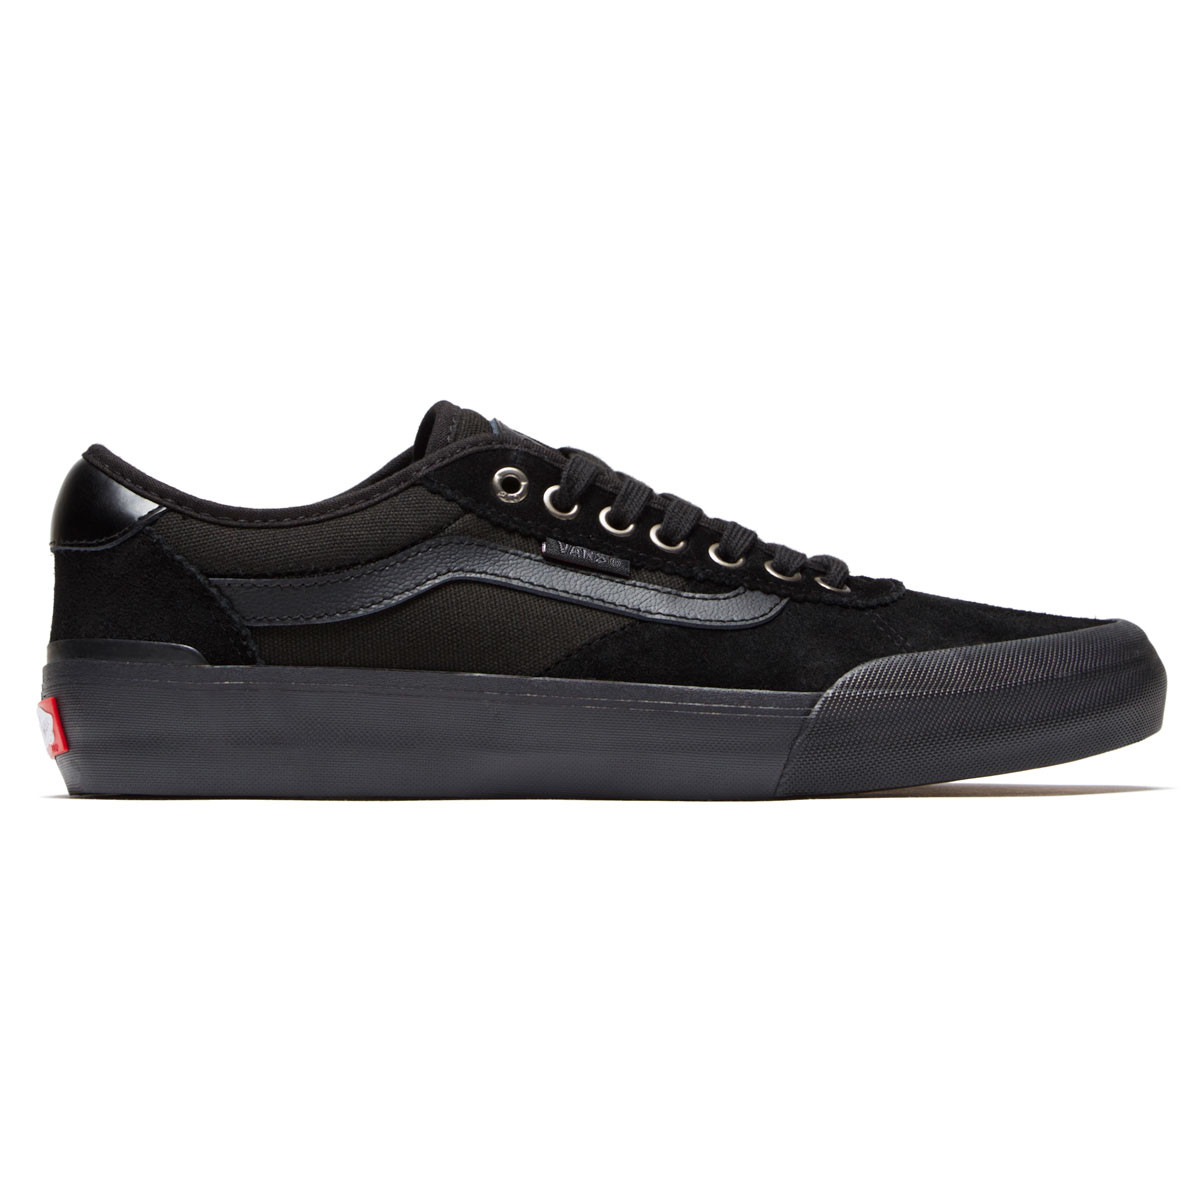 Vans Chima Pro 2 Shoes - Blackout - 7.0 adb5f651b